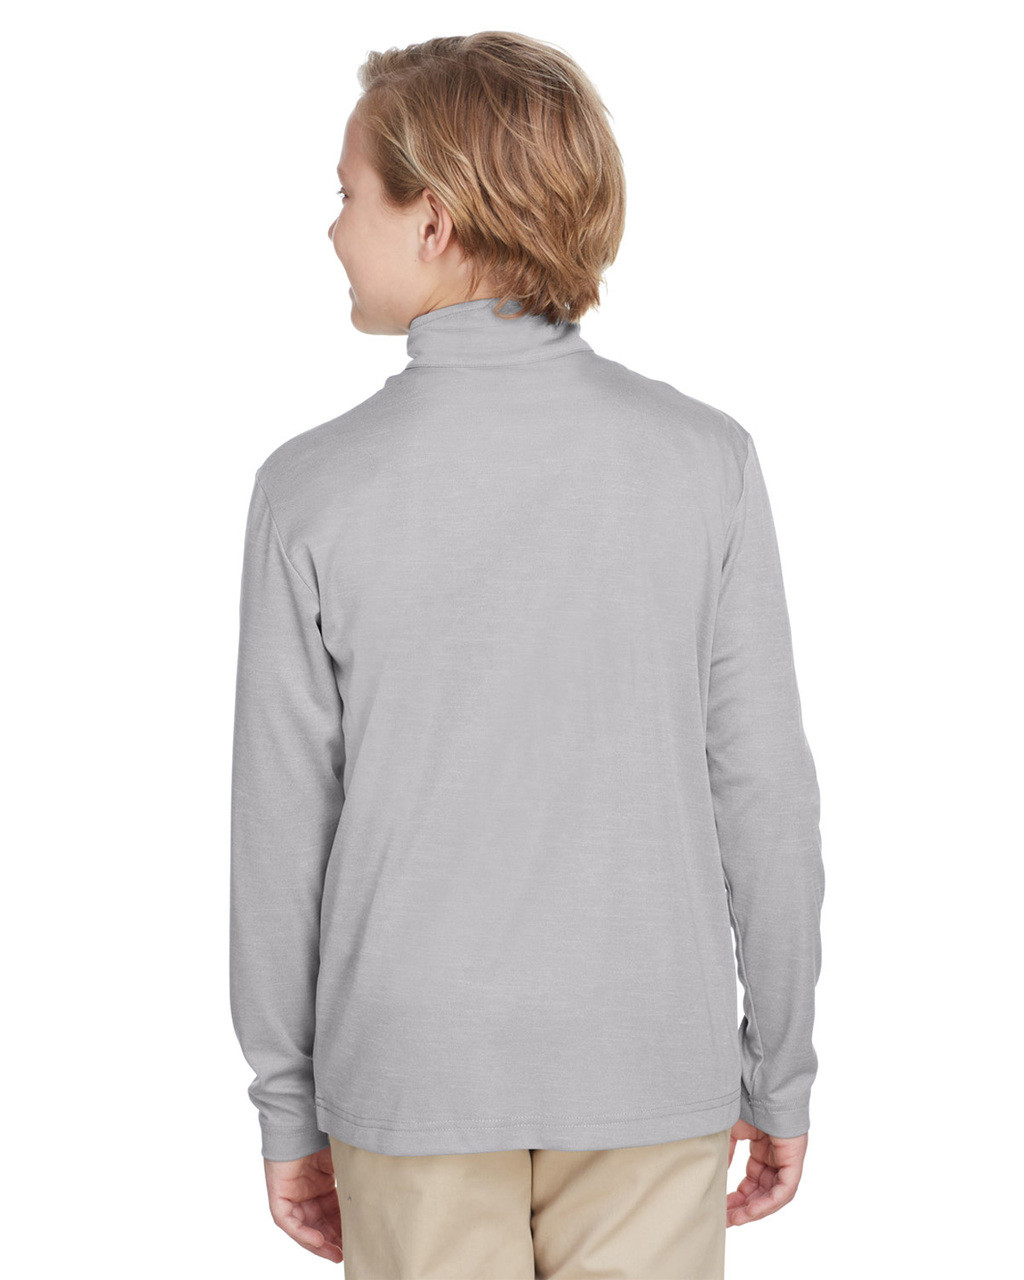 Athletic Heather, Back - TT31HY Team 365 Youth Zone Sonic Heather Performance Quarter-Zip Athletic Shirt | BlankClothing.ca